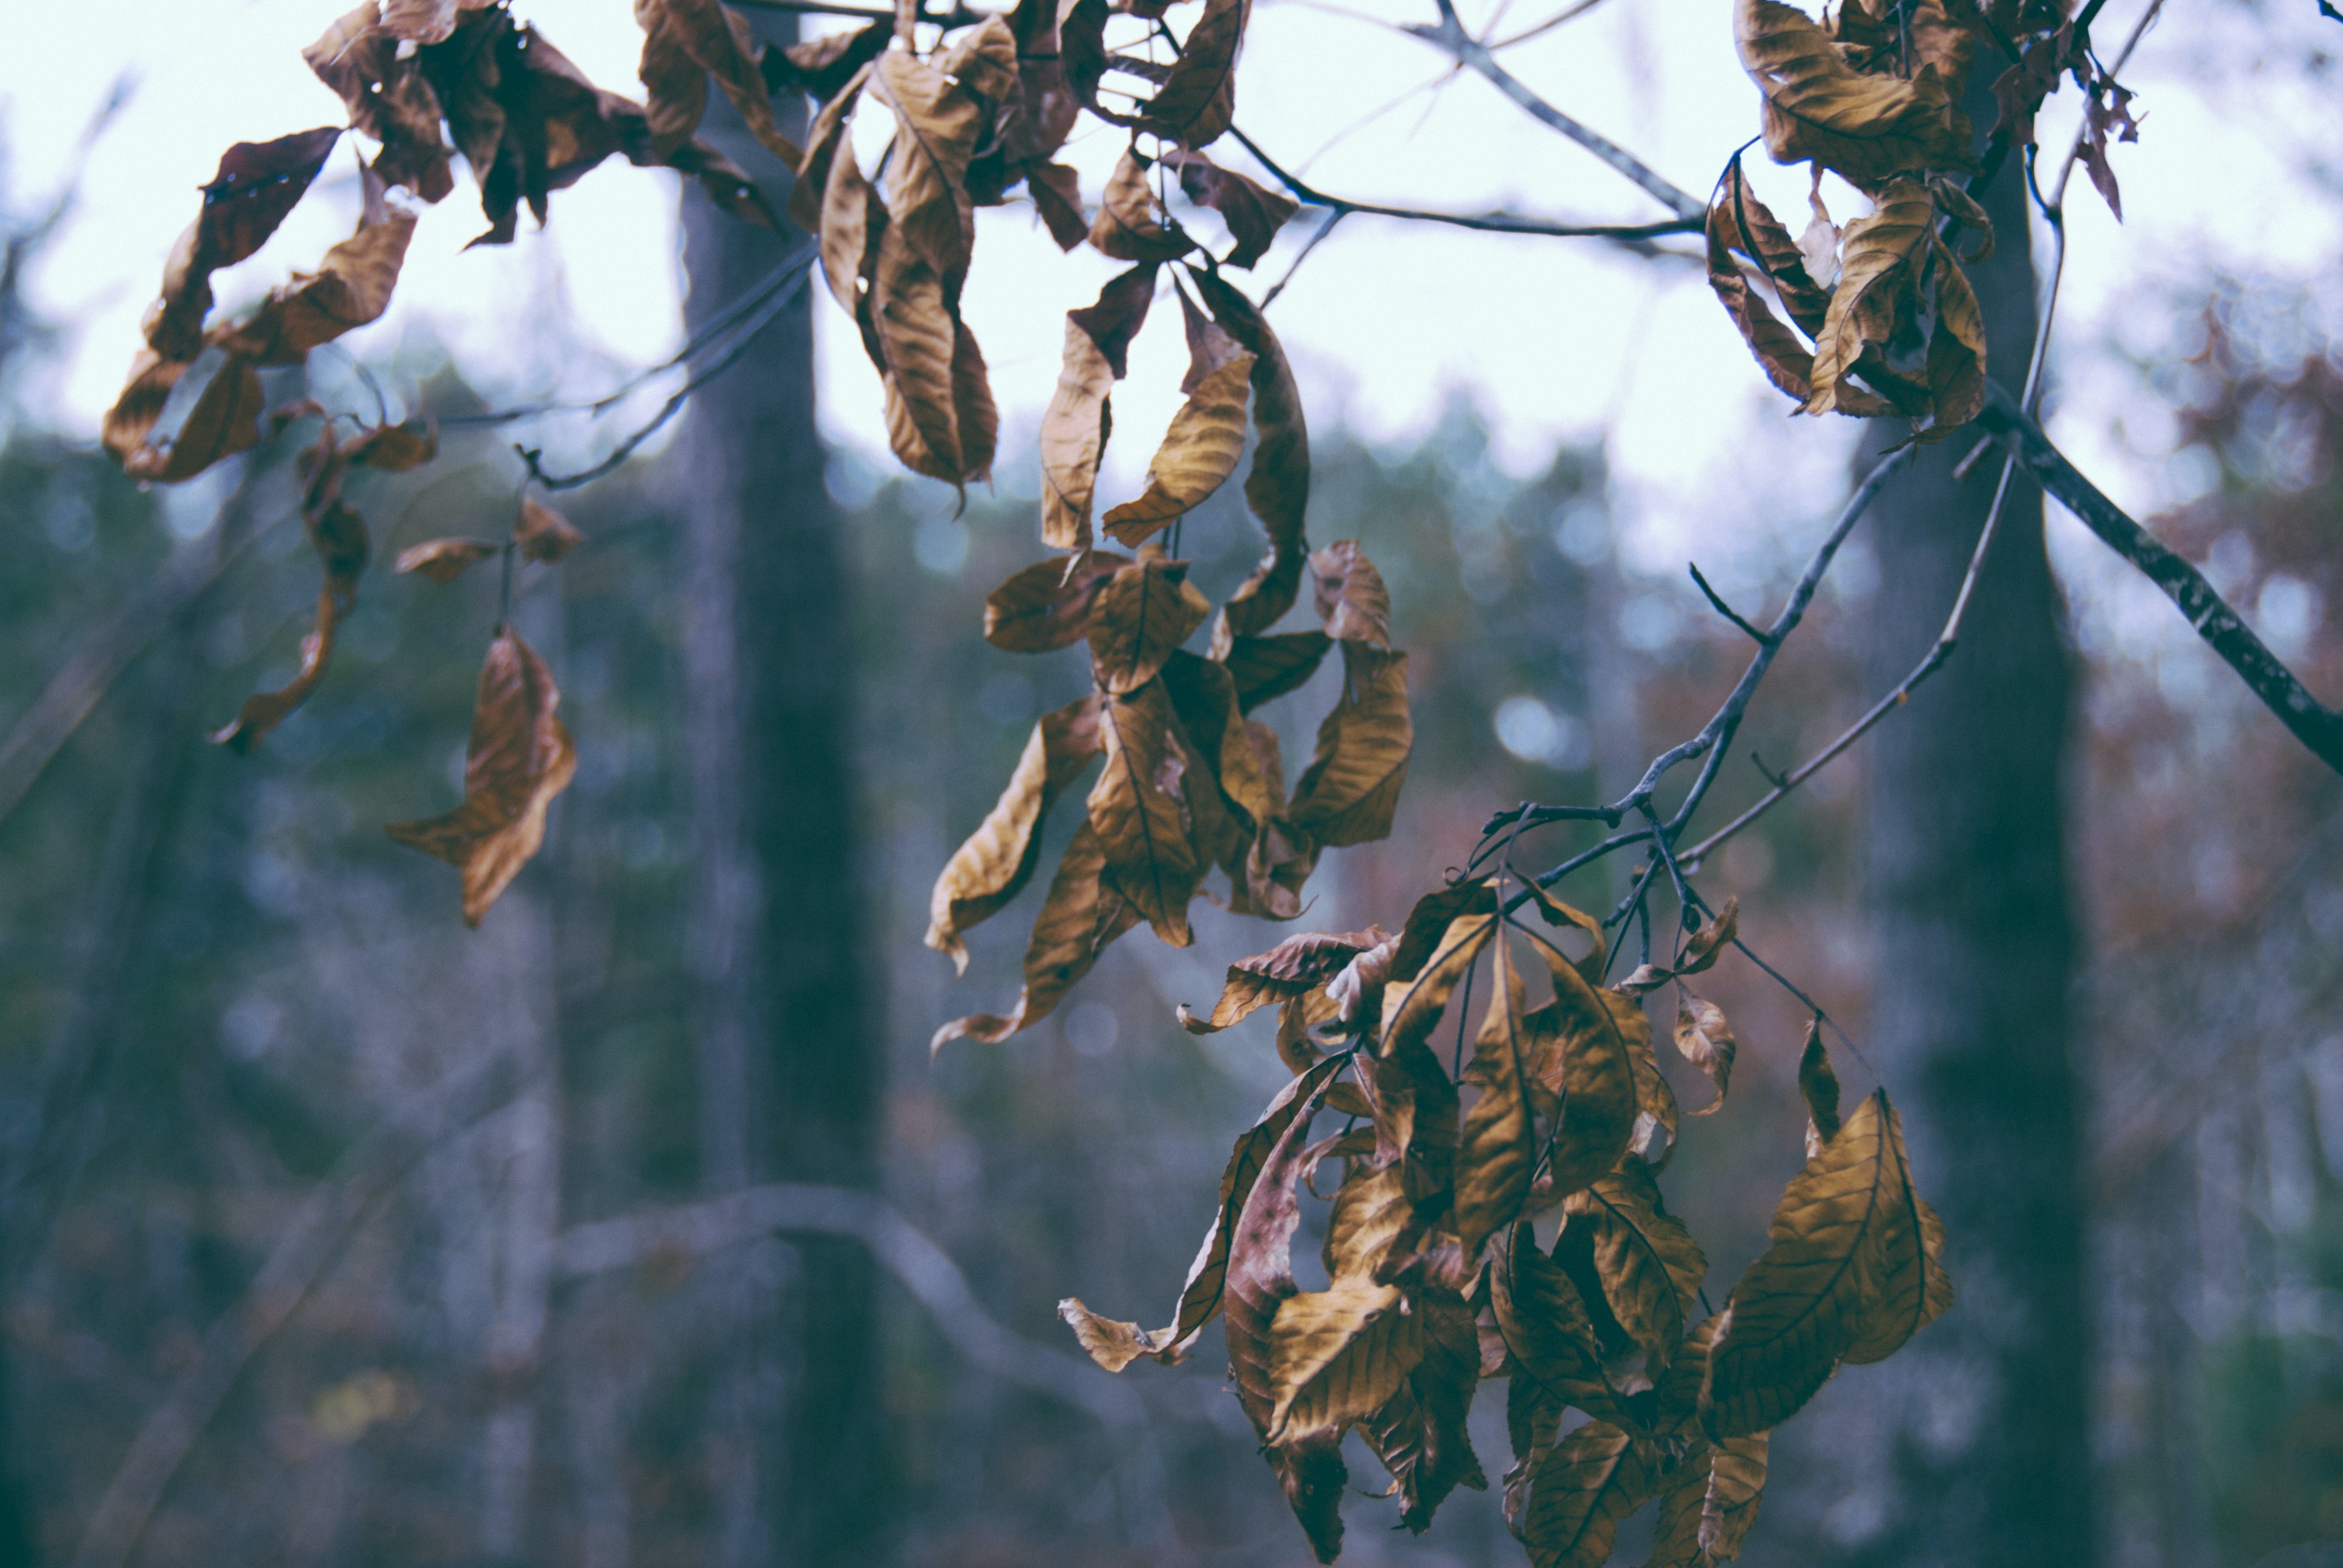 Wilting leaves on a branch in autumn